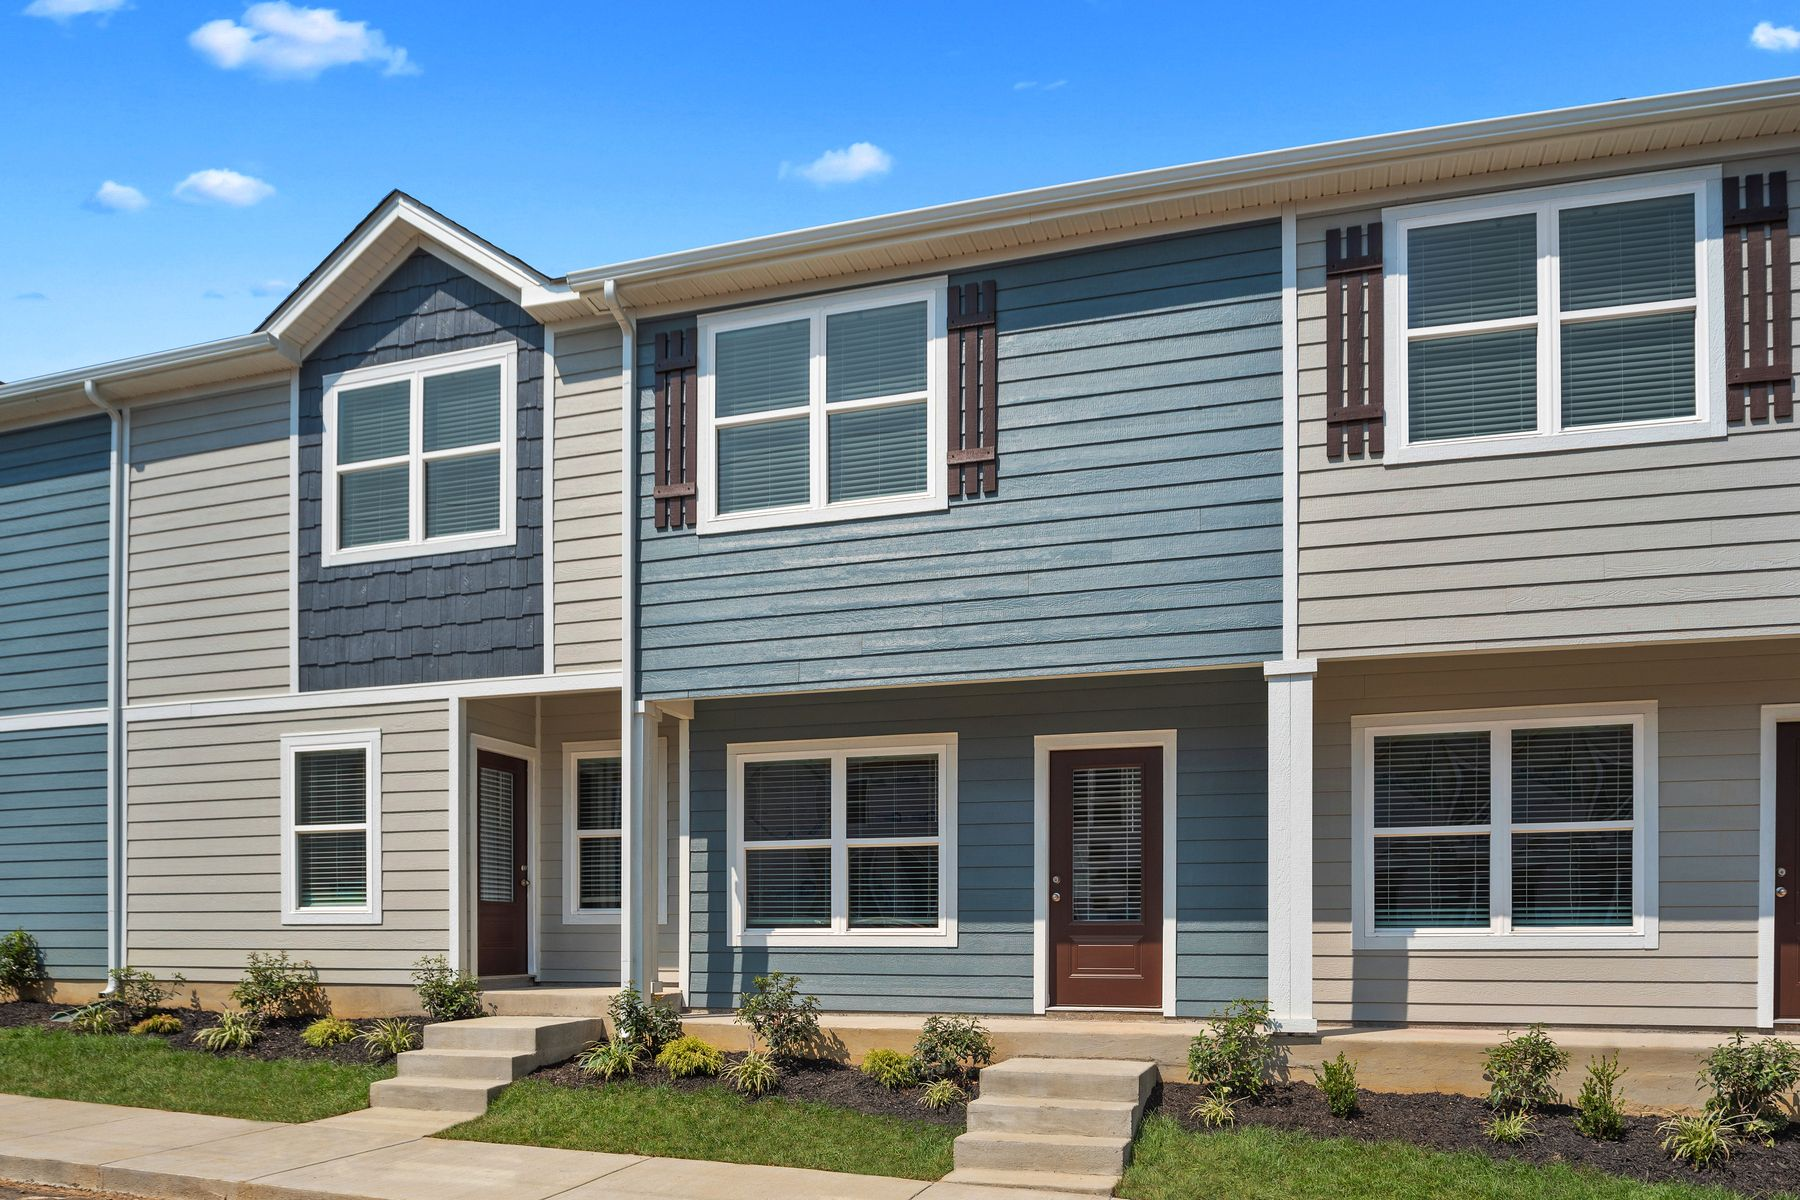 The Aspen by LGI Homes:Enjoy living in a premier community with stunning upgraded townhomes!